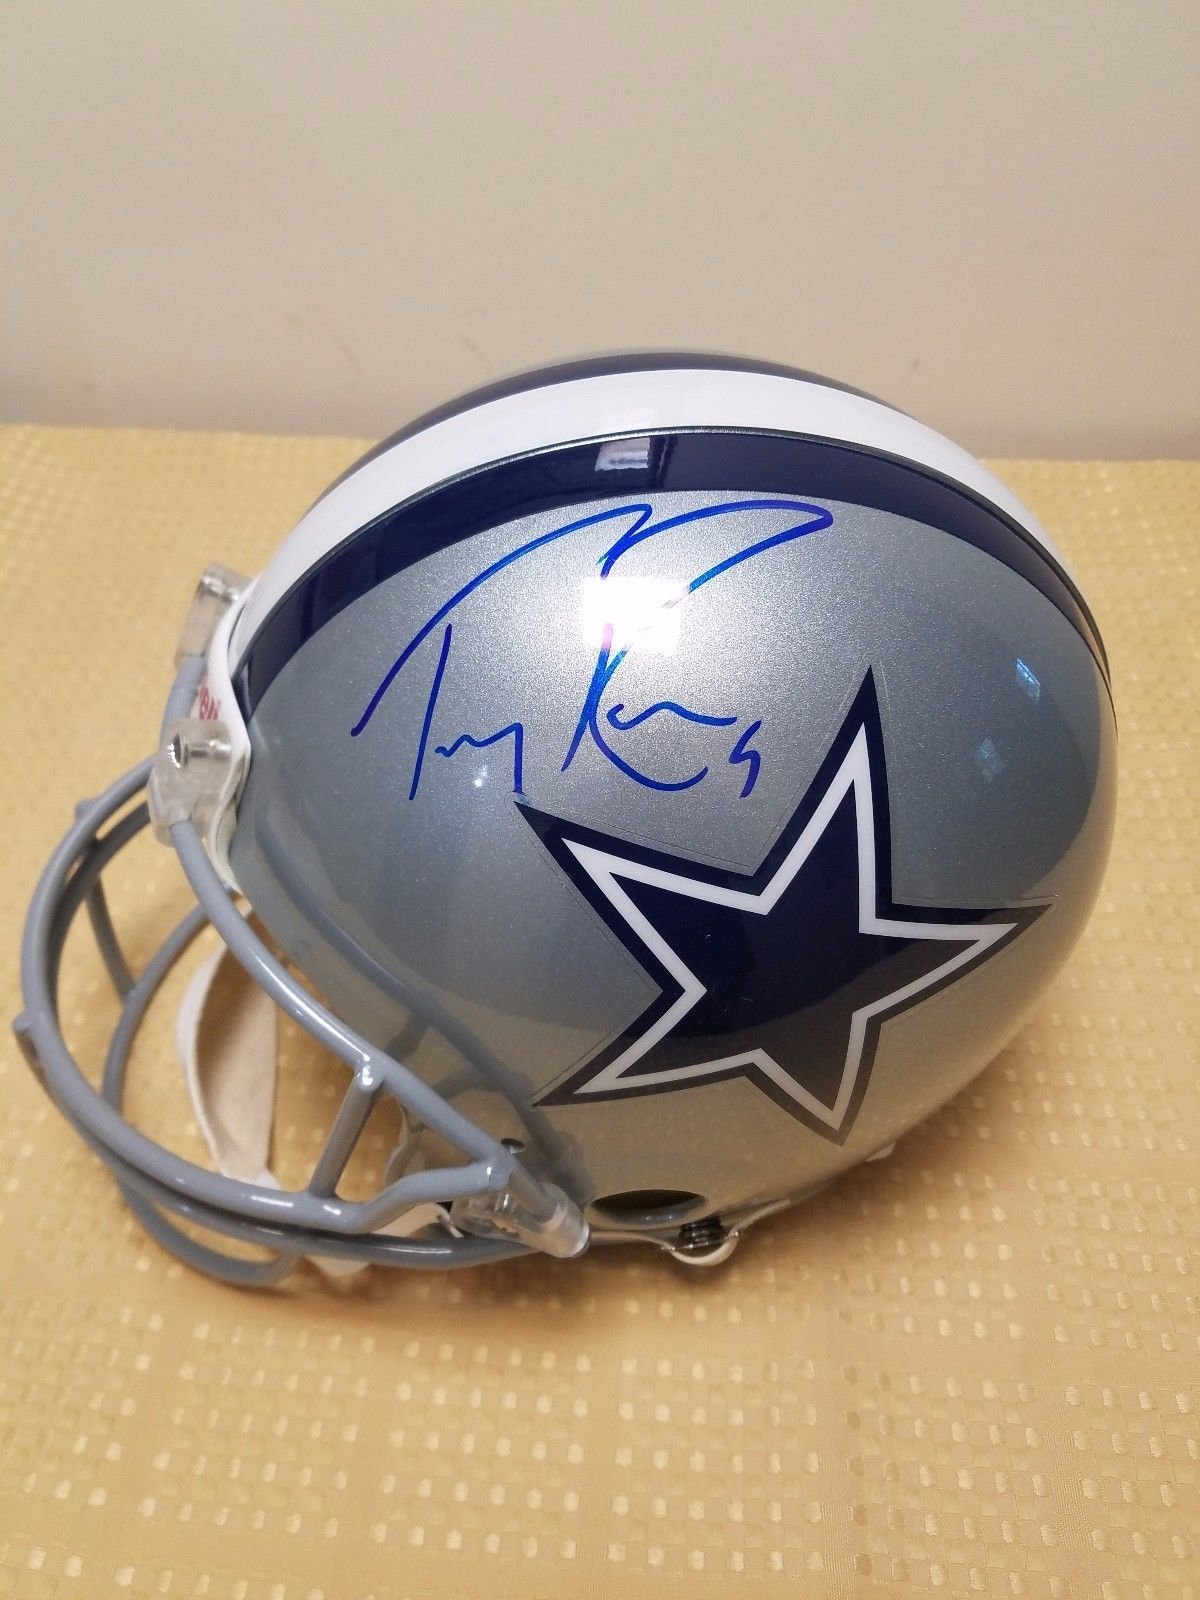 separation shoes 16831 640c3 Tony Romo autographed Full Size Ridell Dallas Cowboys helmet ...